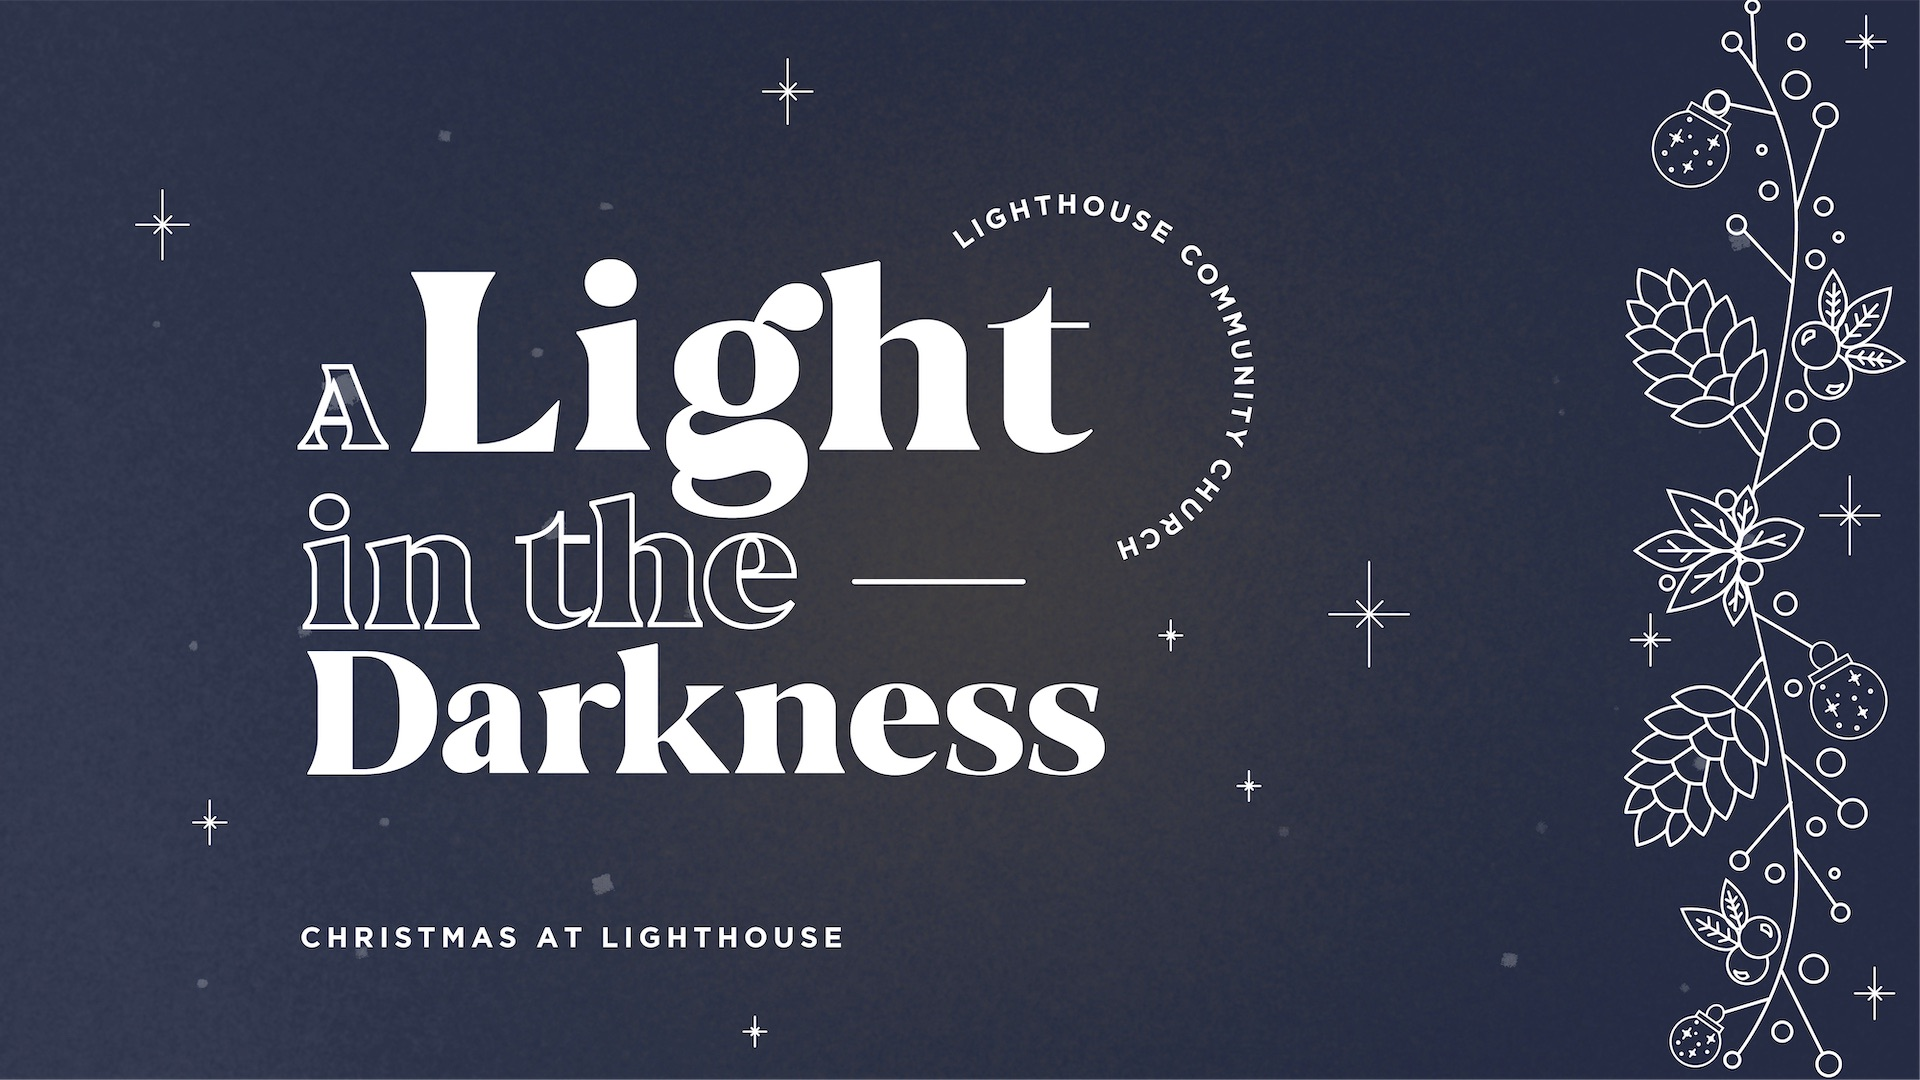 A Light That Overcomes the Darkness (John 1:4-5)